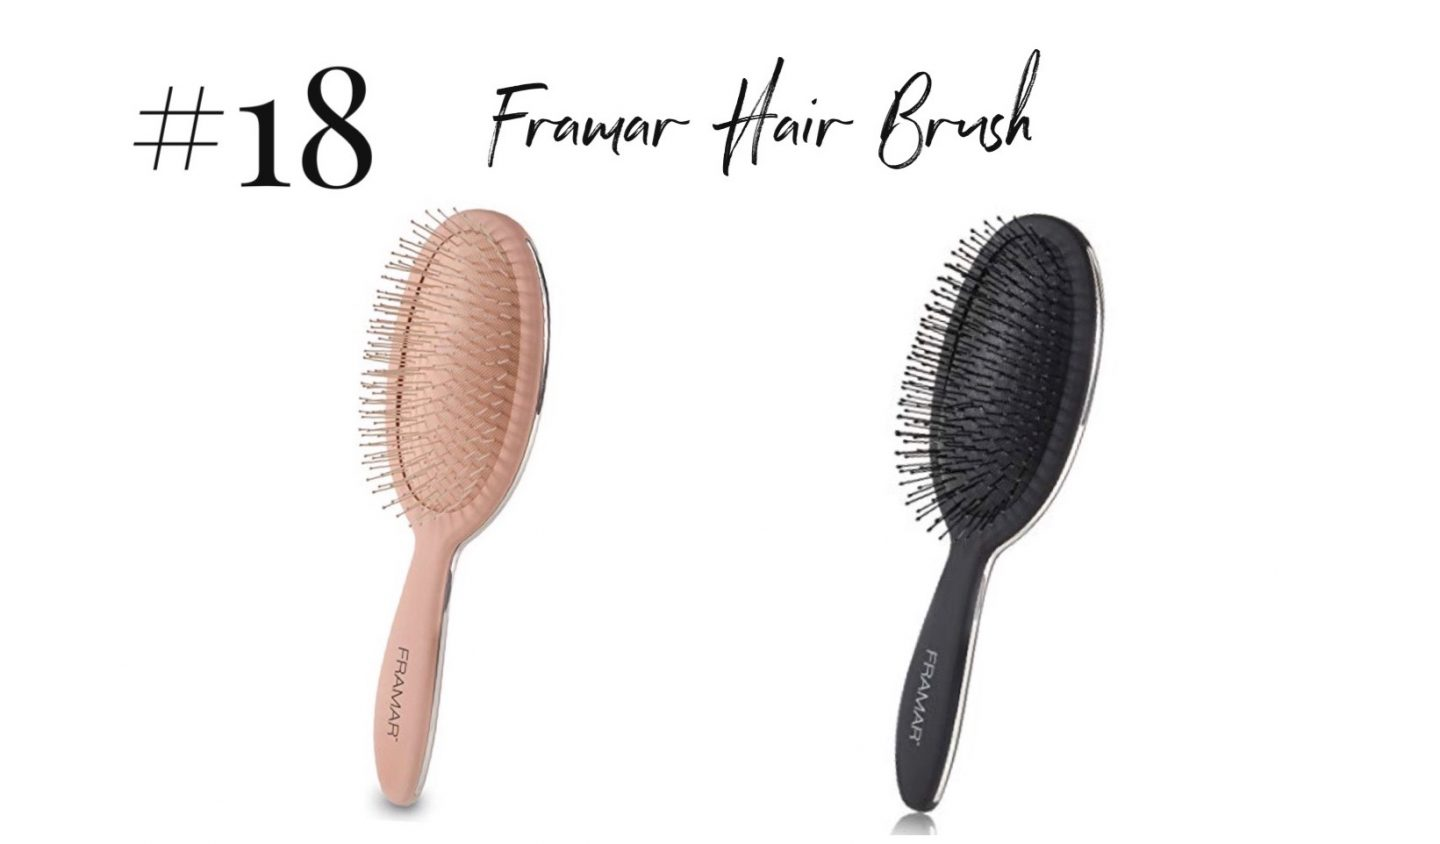 best 2019 purchases featured by top San Diego life and style blog, Navy Grace: Framar hair brush | 2019 Favorite Products by popular San Diego life and style blog, Navy Grace: image of a Framar hair brush.